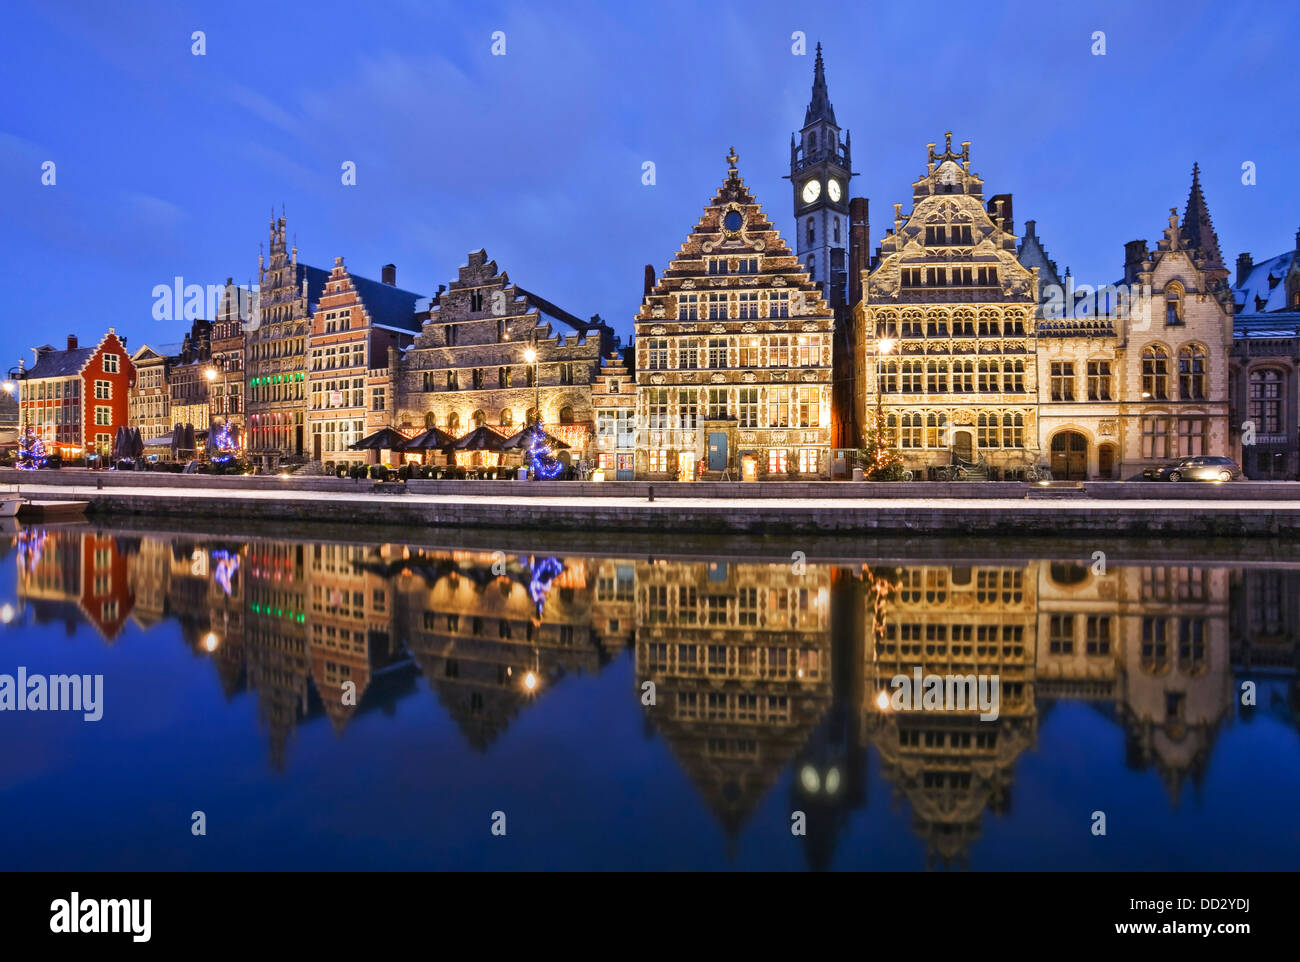 Guild houses along Graslei in the historic centre of Ghent, Belgium - Stock Image